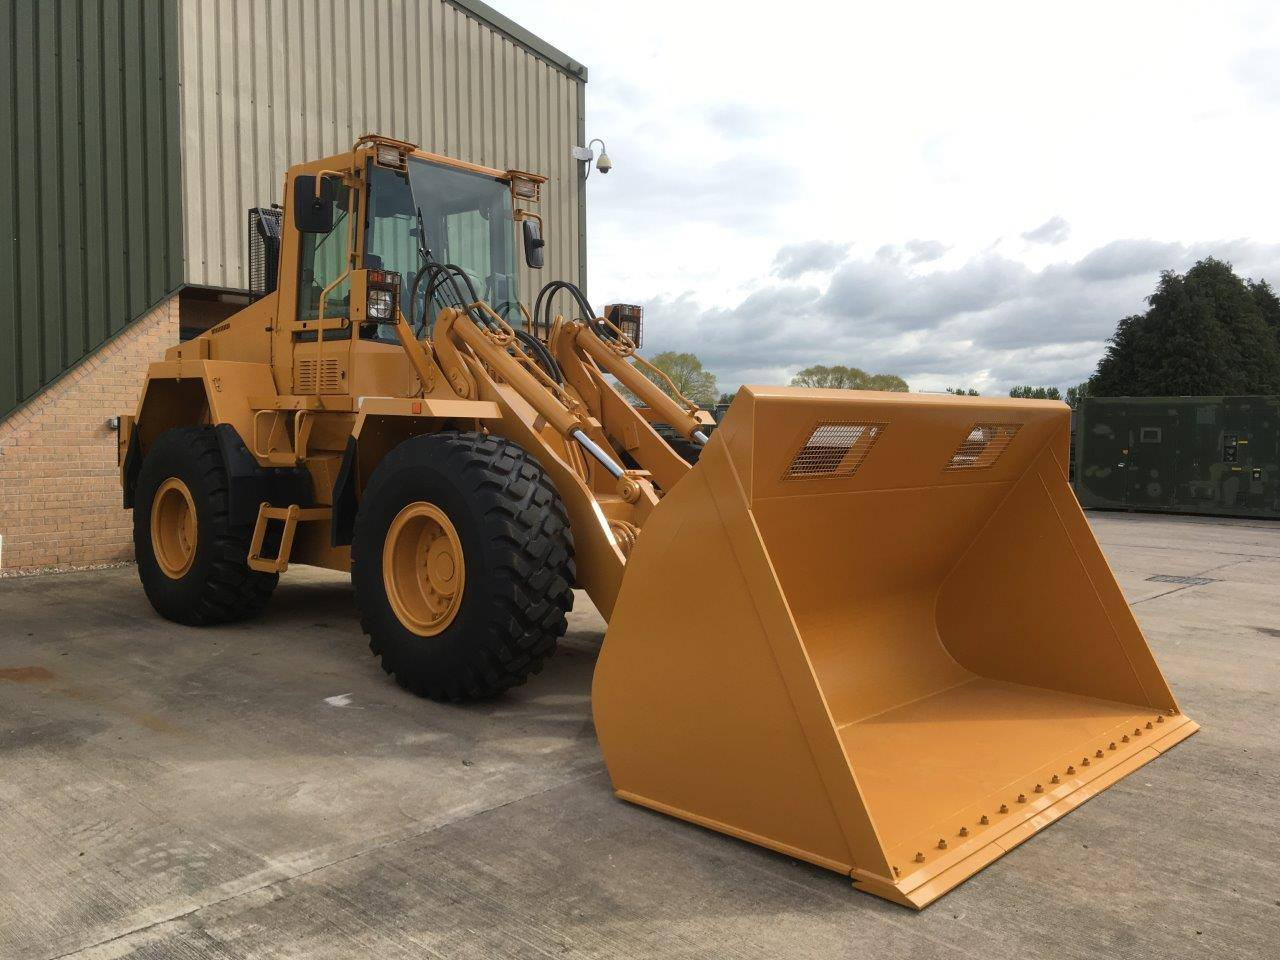 Case 721 CXT wheeled loader for sale